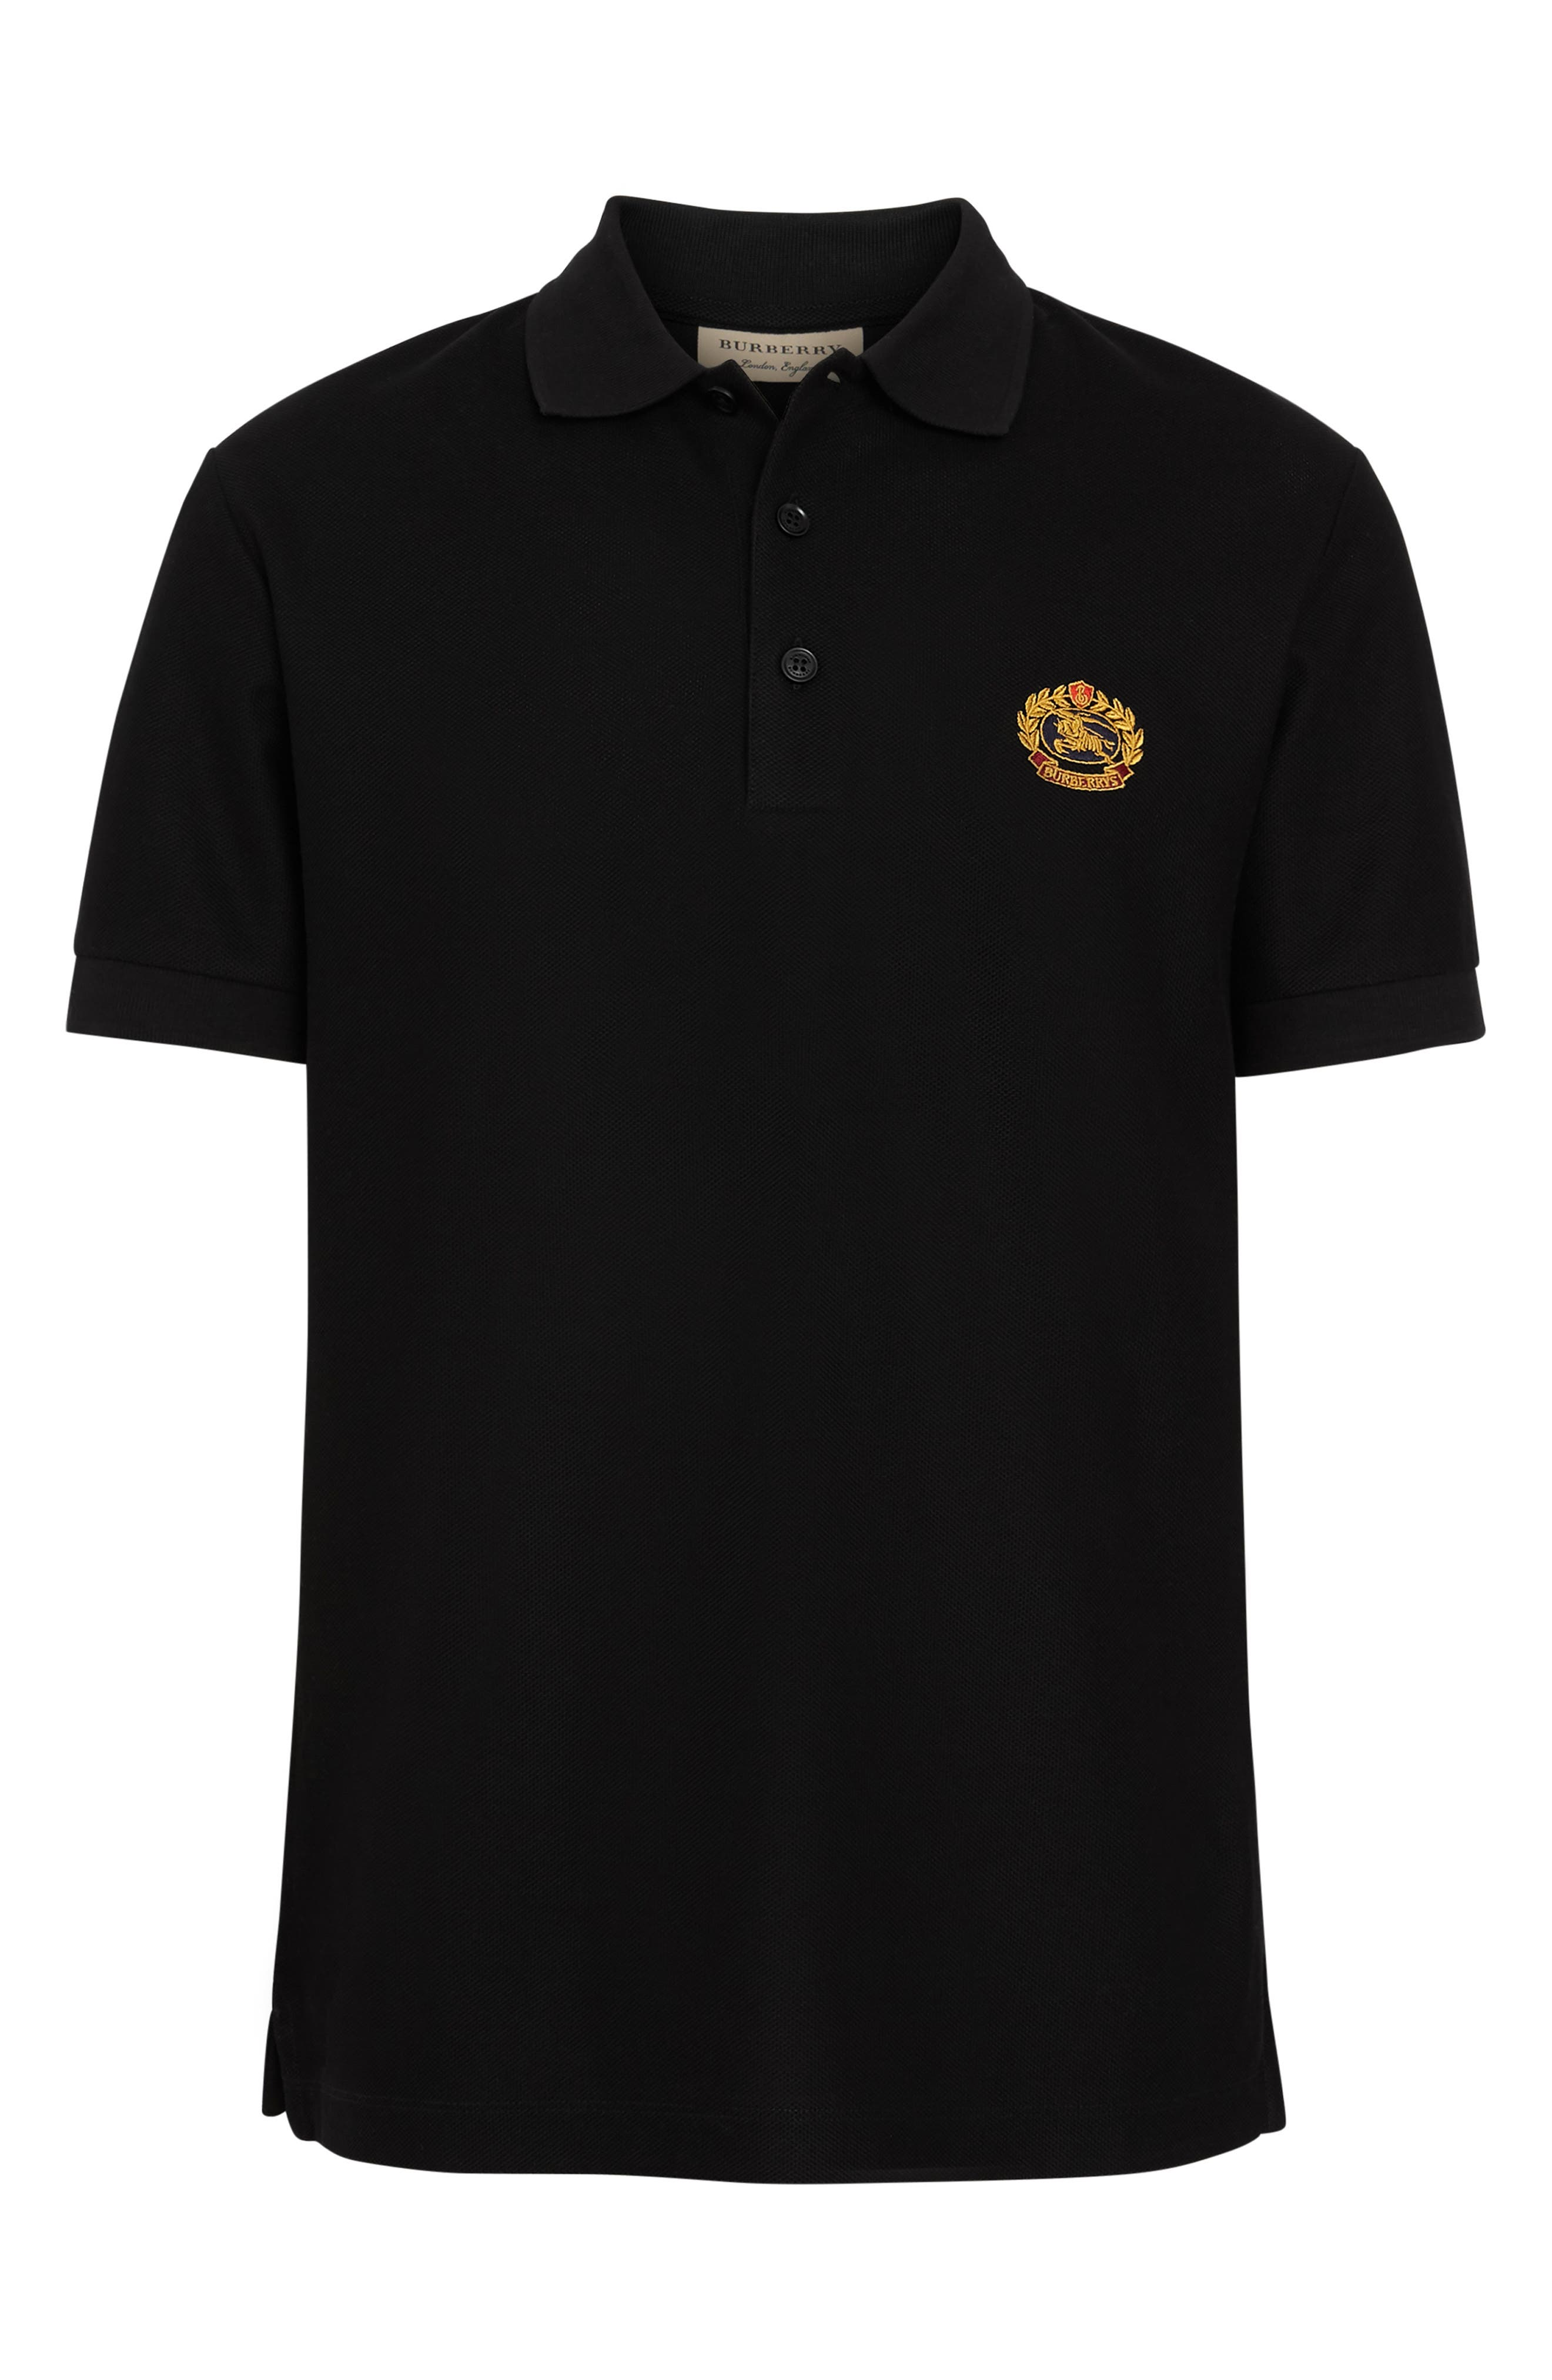 Densford Piqué Polo,                             Alternate thumbnail 3, color,                             001